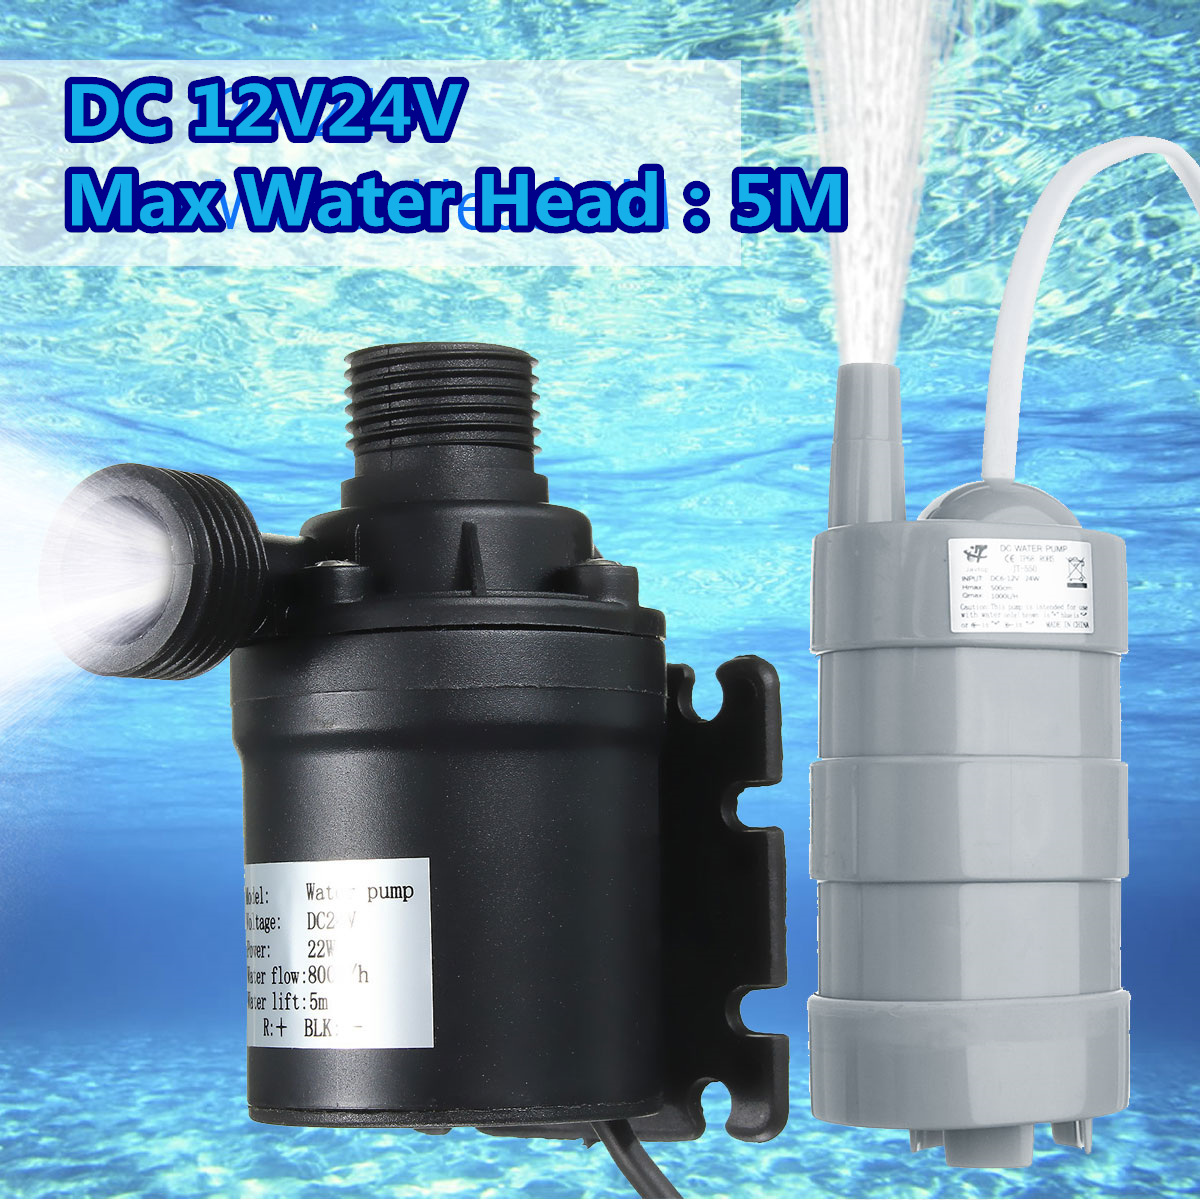 DC 12V 24V Solar Pump Brushless Magnetic Submersible Water Pump 5M Lift for Pond Rockery Garden Fountain 1000L/H allblue slugger 65sp professional 3d shad fishing lure 65mm 6 5g suspend wobbler minnow 0 5 1 2m bass pike bait fishing tackle